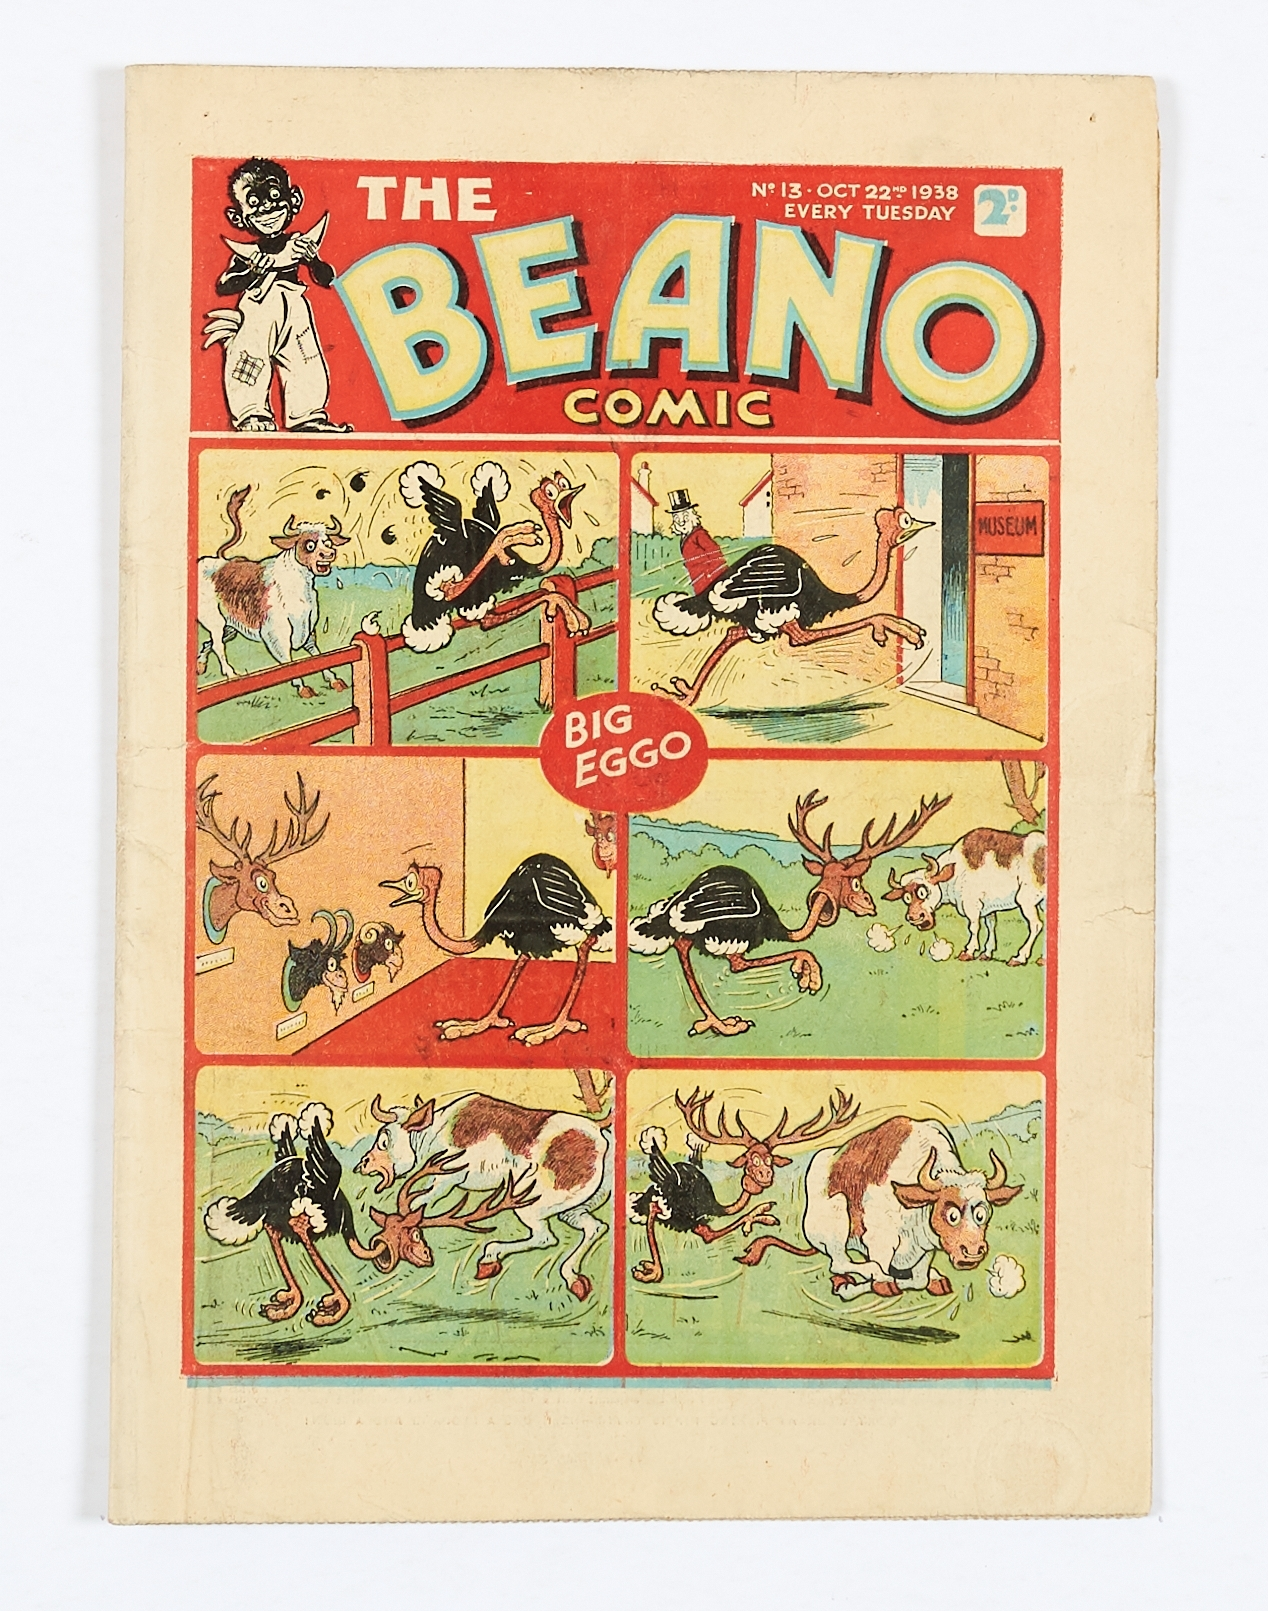 Lot 16 - Beano No 13 (1938). Bright cover, with half-inch margin tear, cream pages [vg+]